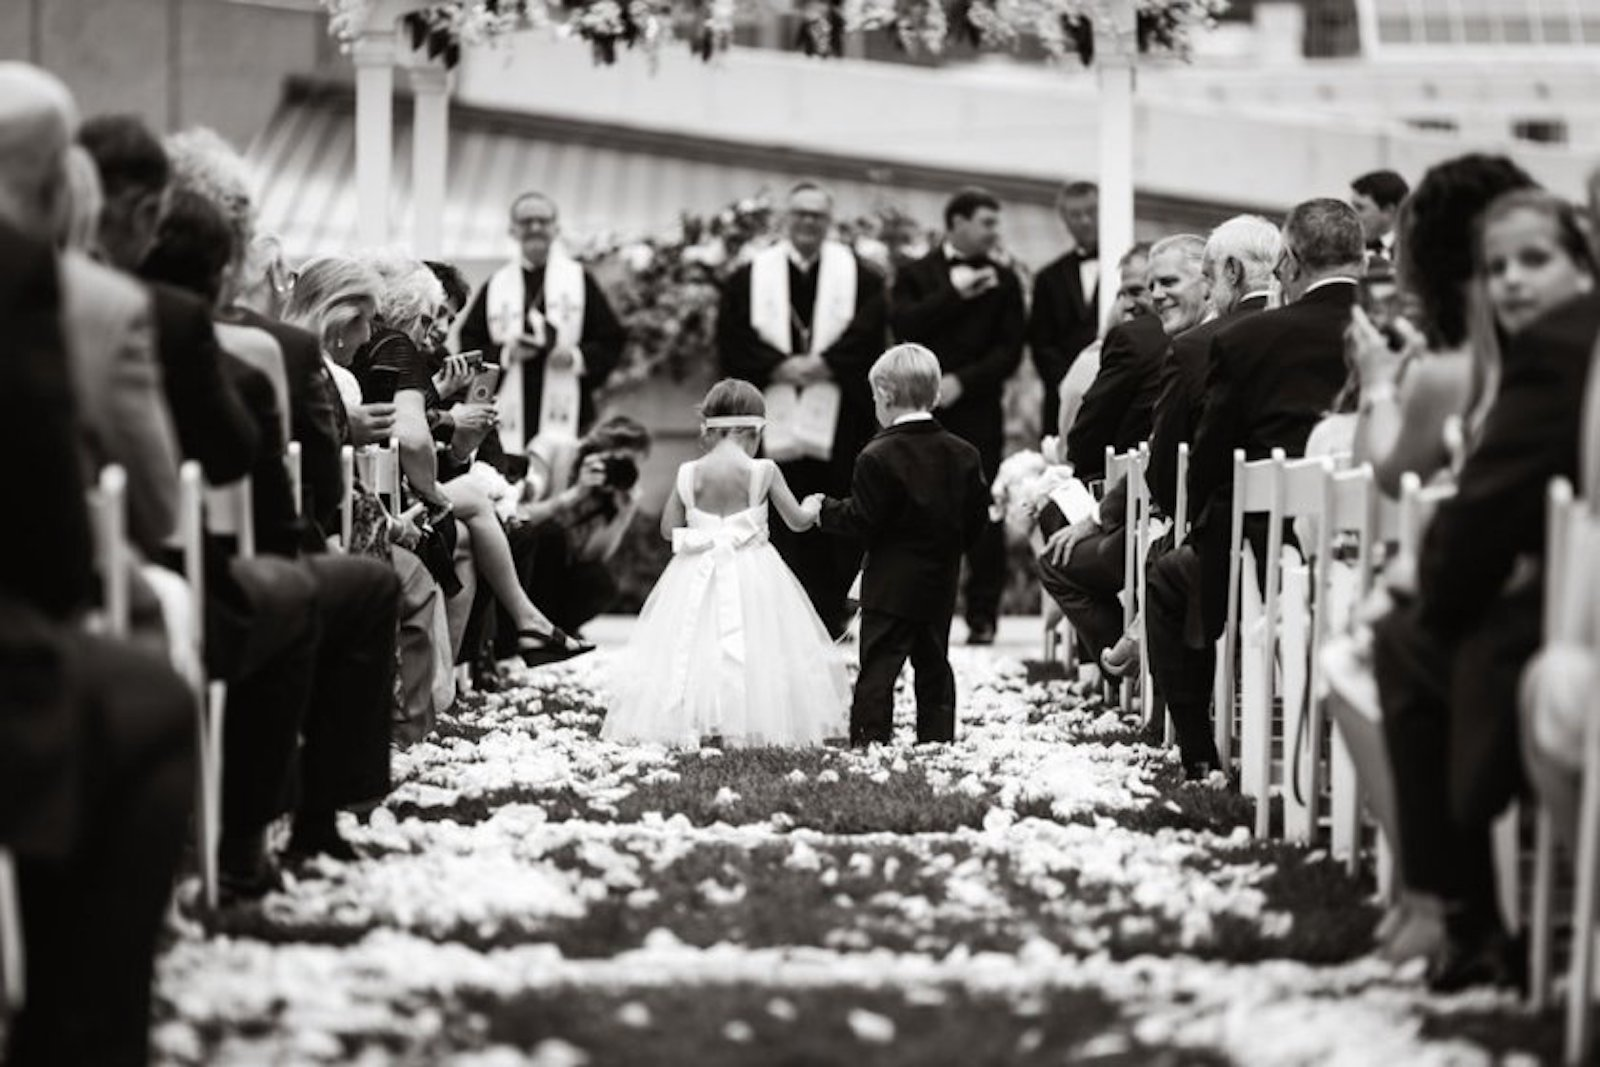 flower girl and ring bearer walking down flower covered aisle at wedding